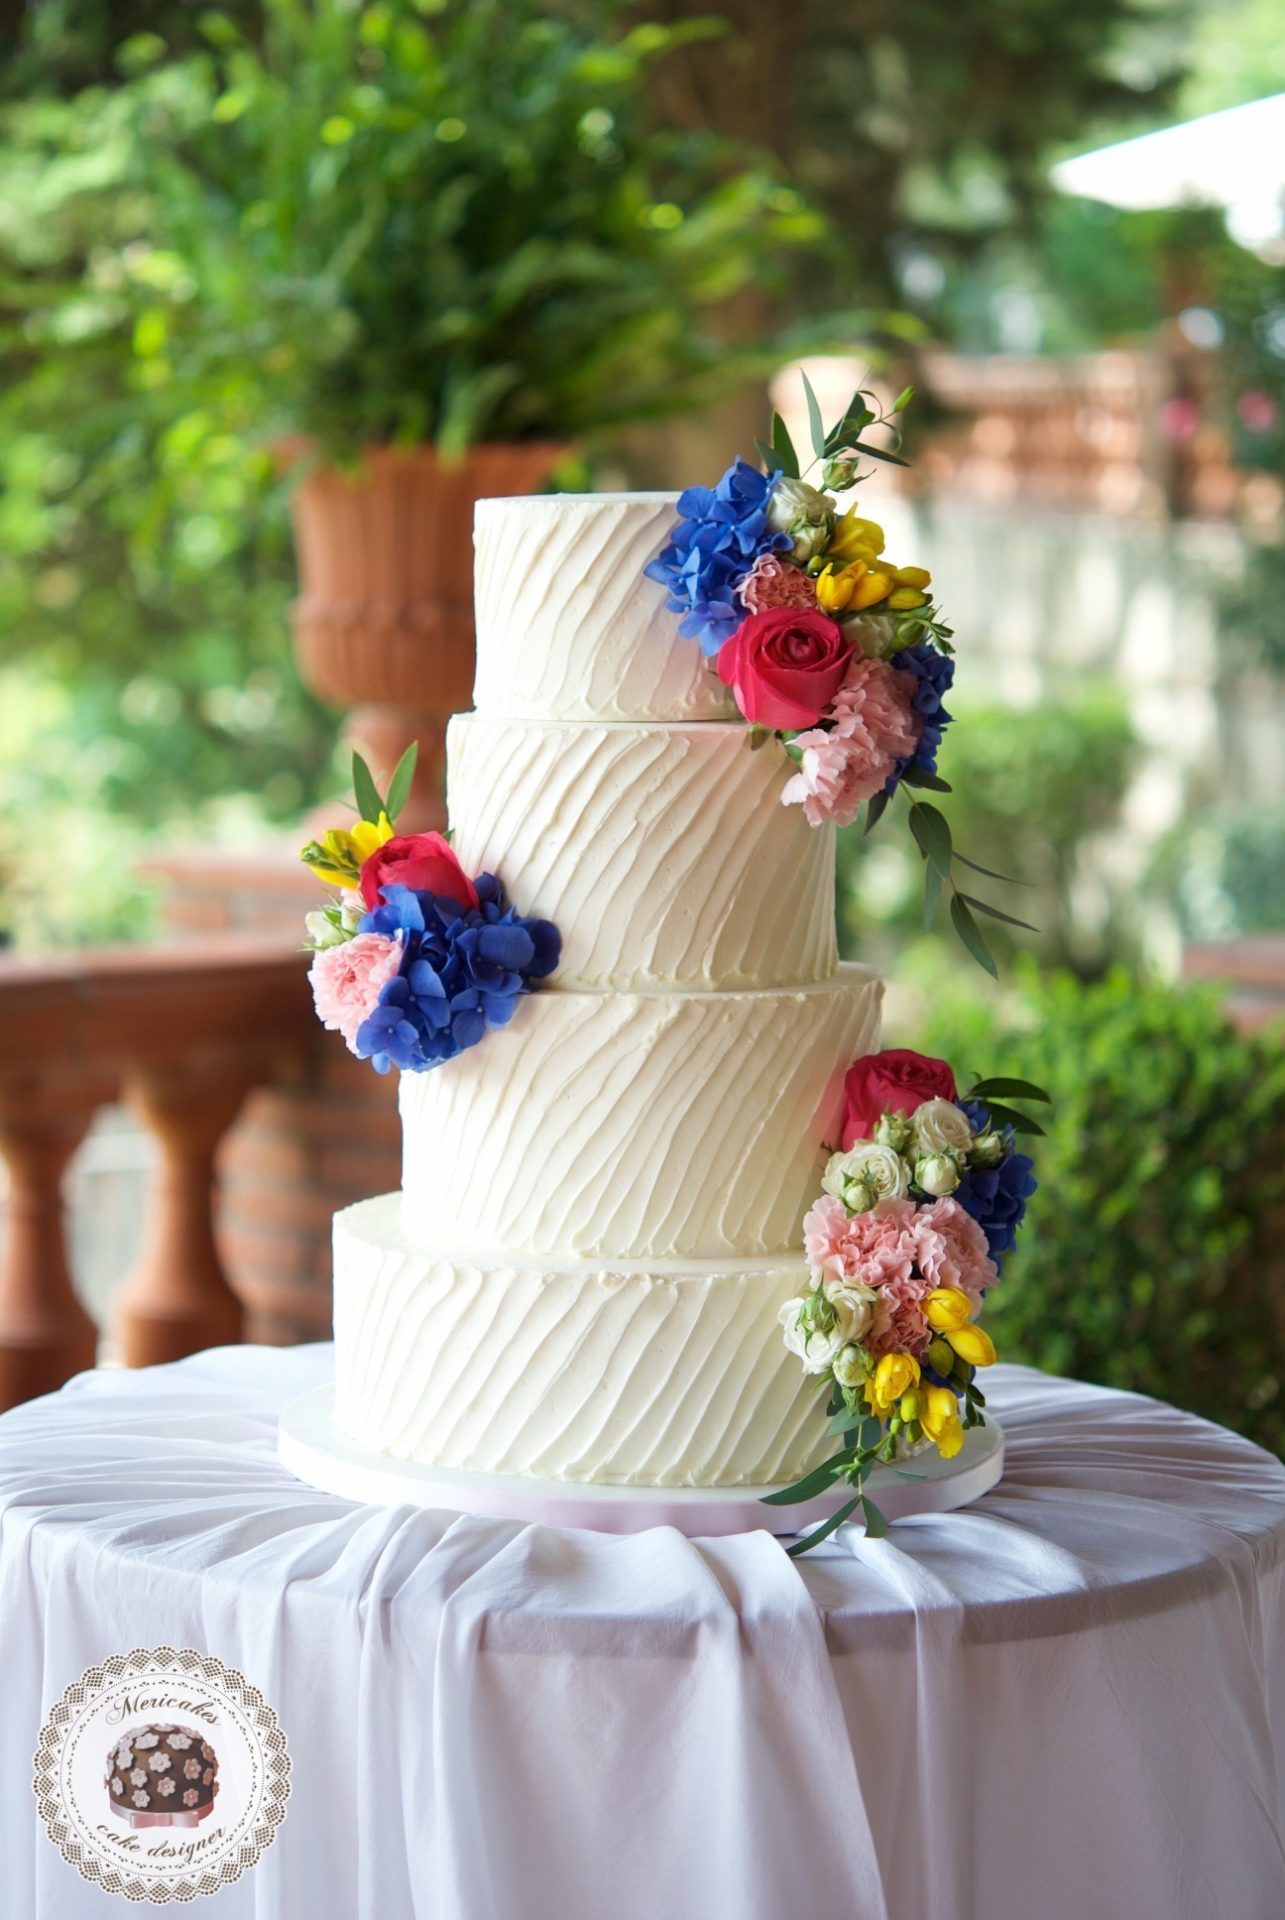 cream cake, wedding cake, stripes cake, mericakes, mas de sant llei, barcelona, tarta de boda, wedding flowers 1